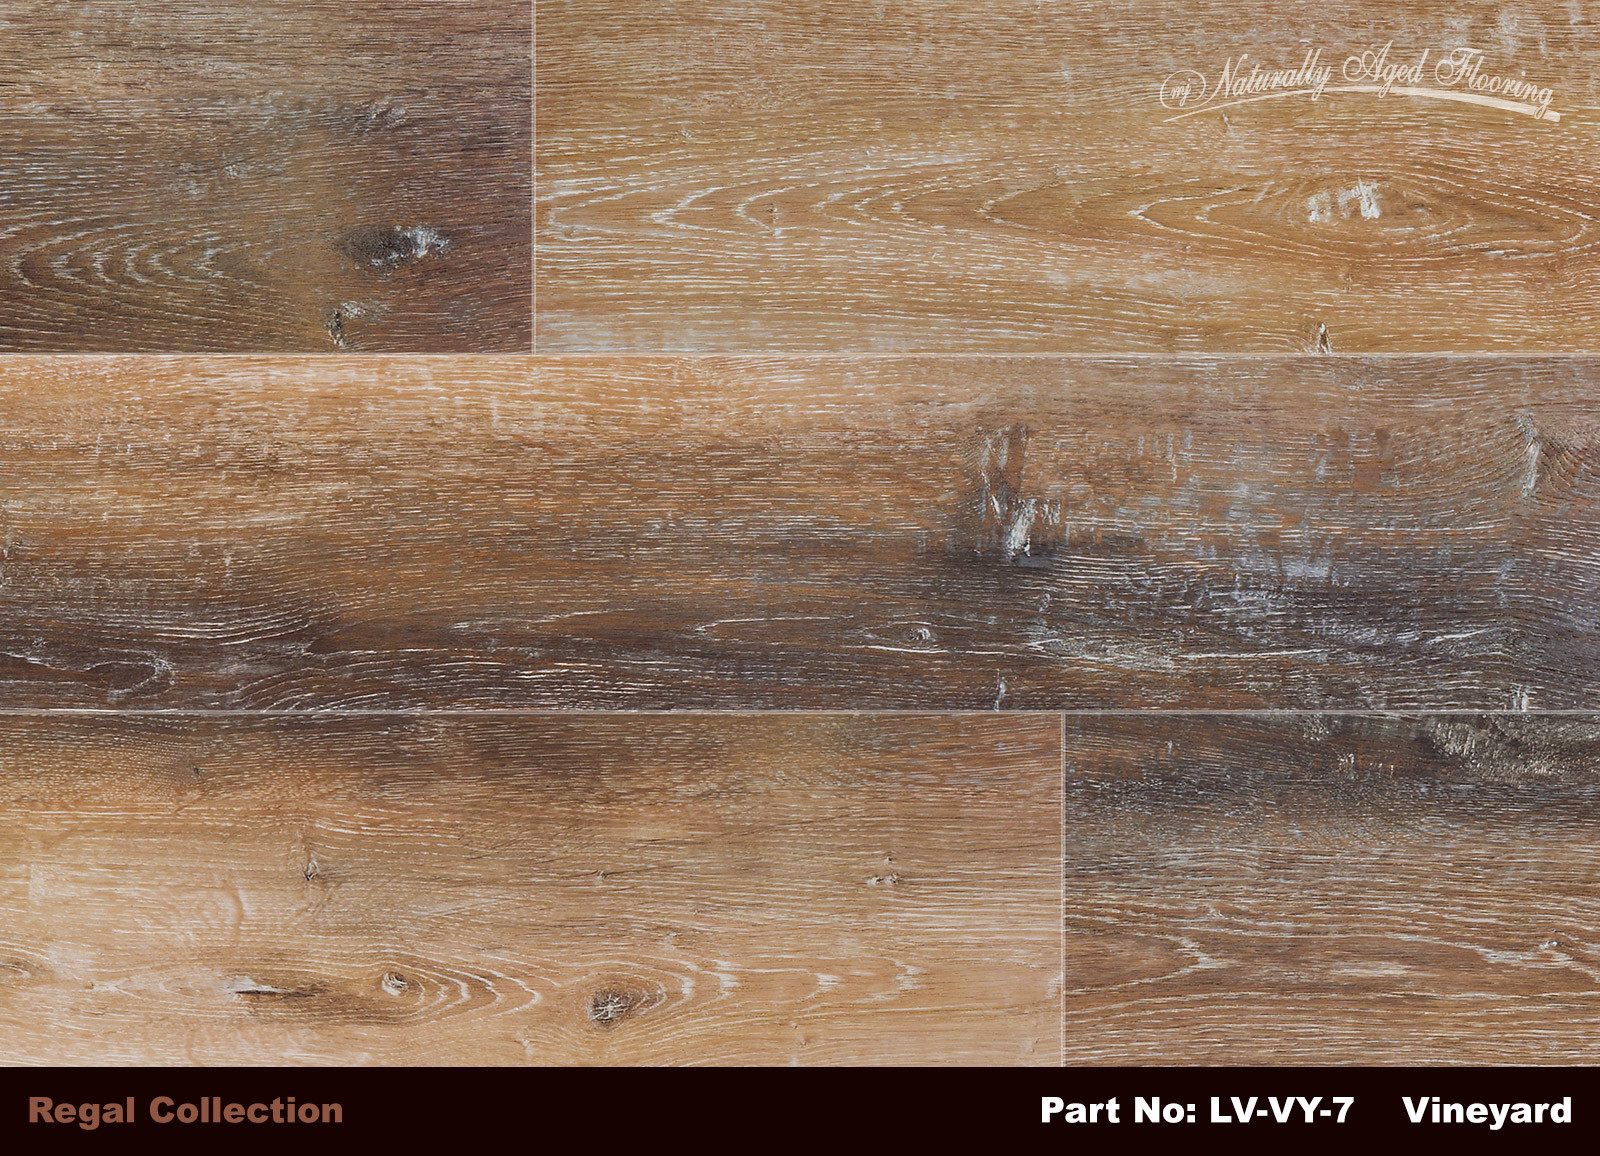 7 Quot Vineyard Naturally Aged Flooring